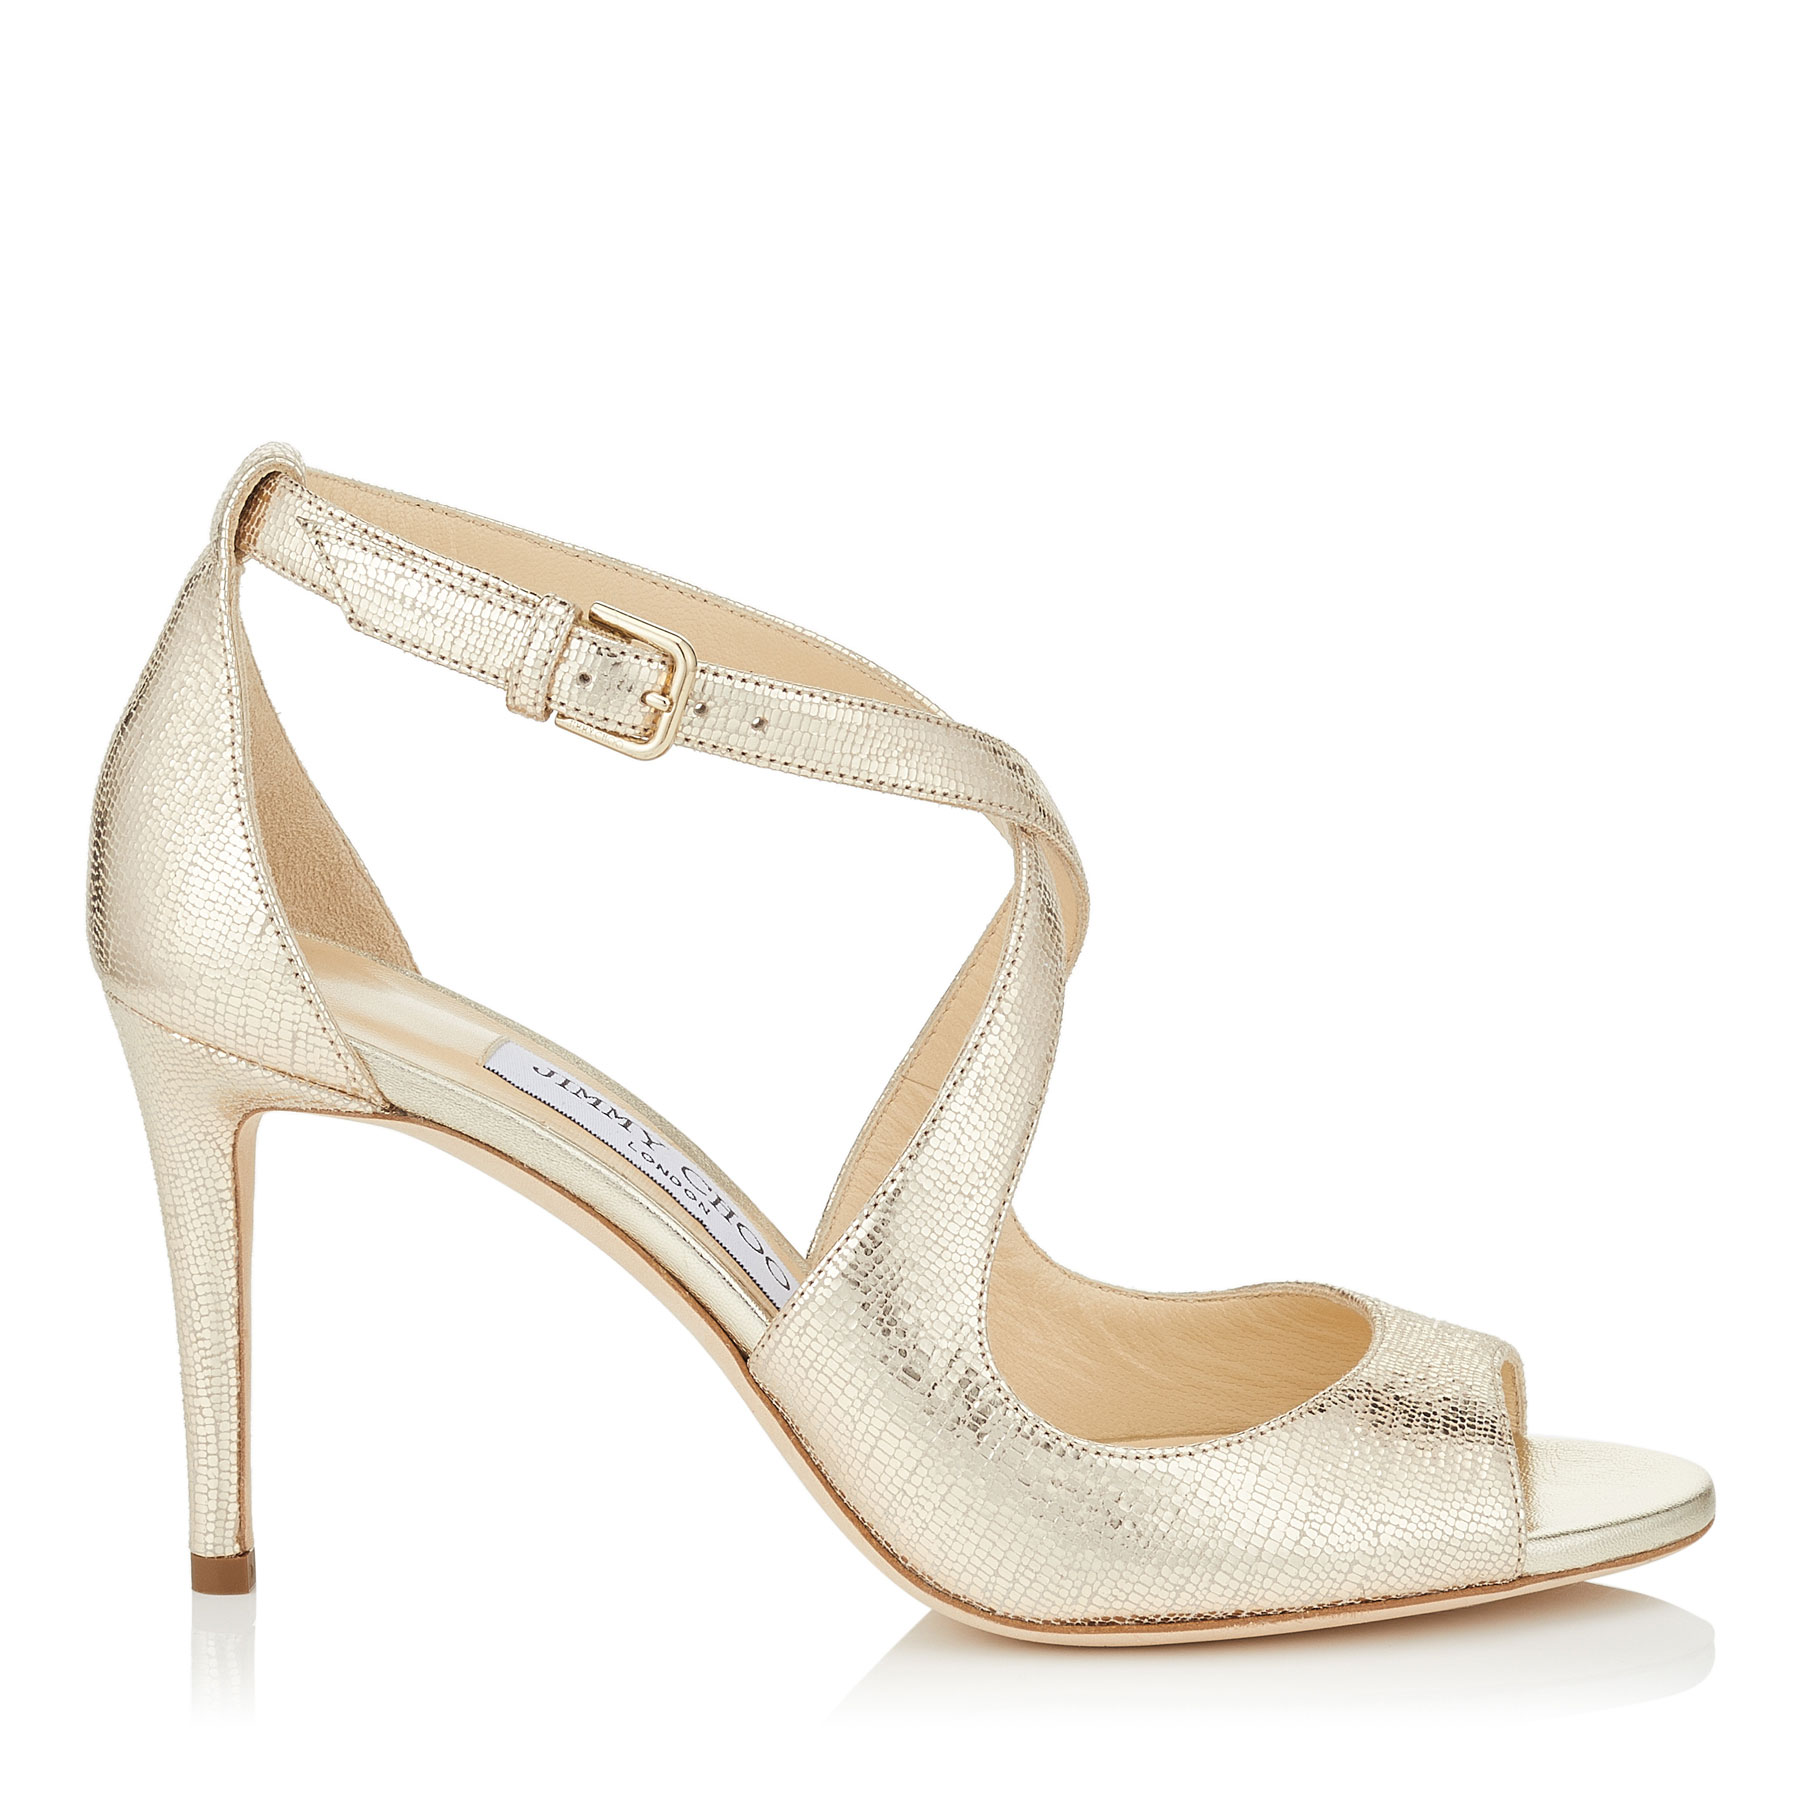 EMILY 85 Gold Metallic Printed Leather Sandals by Jimmy Choo